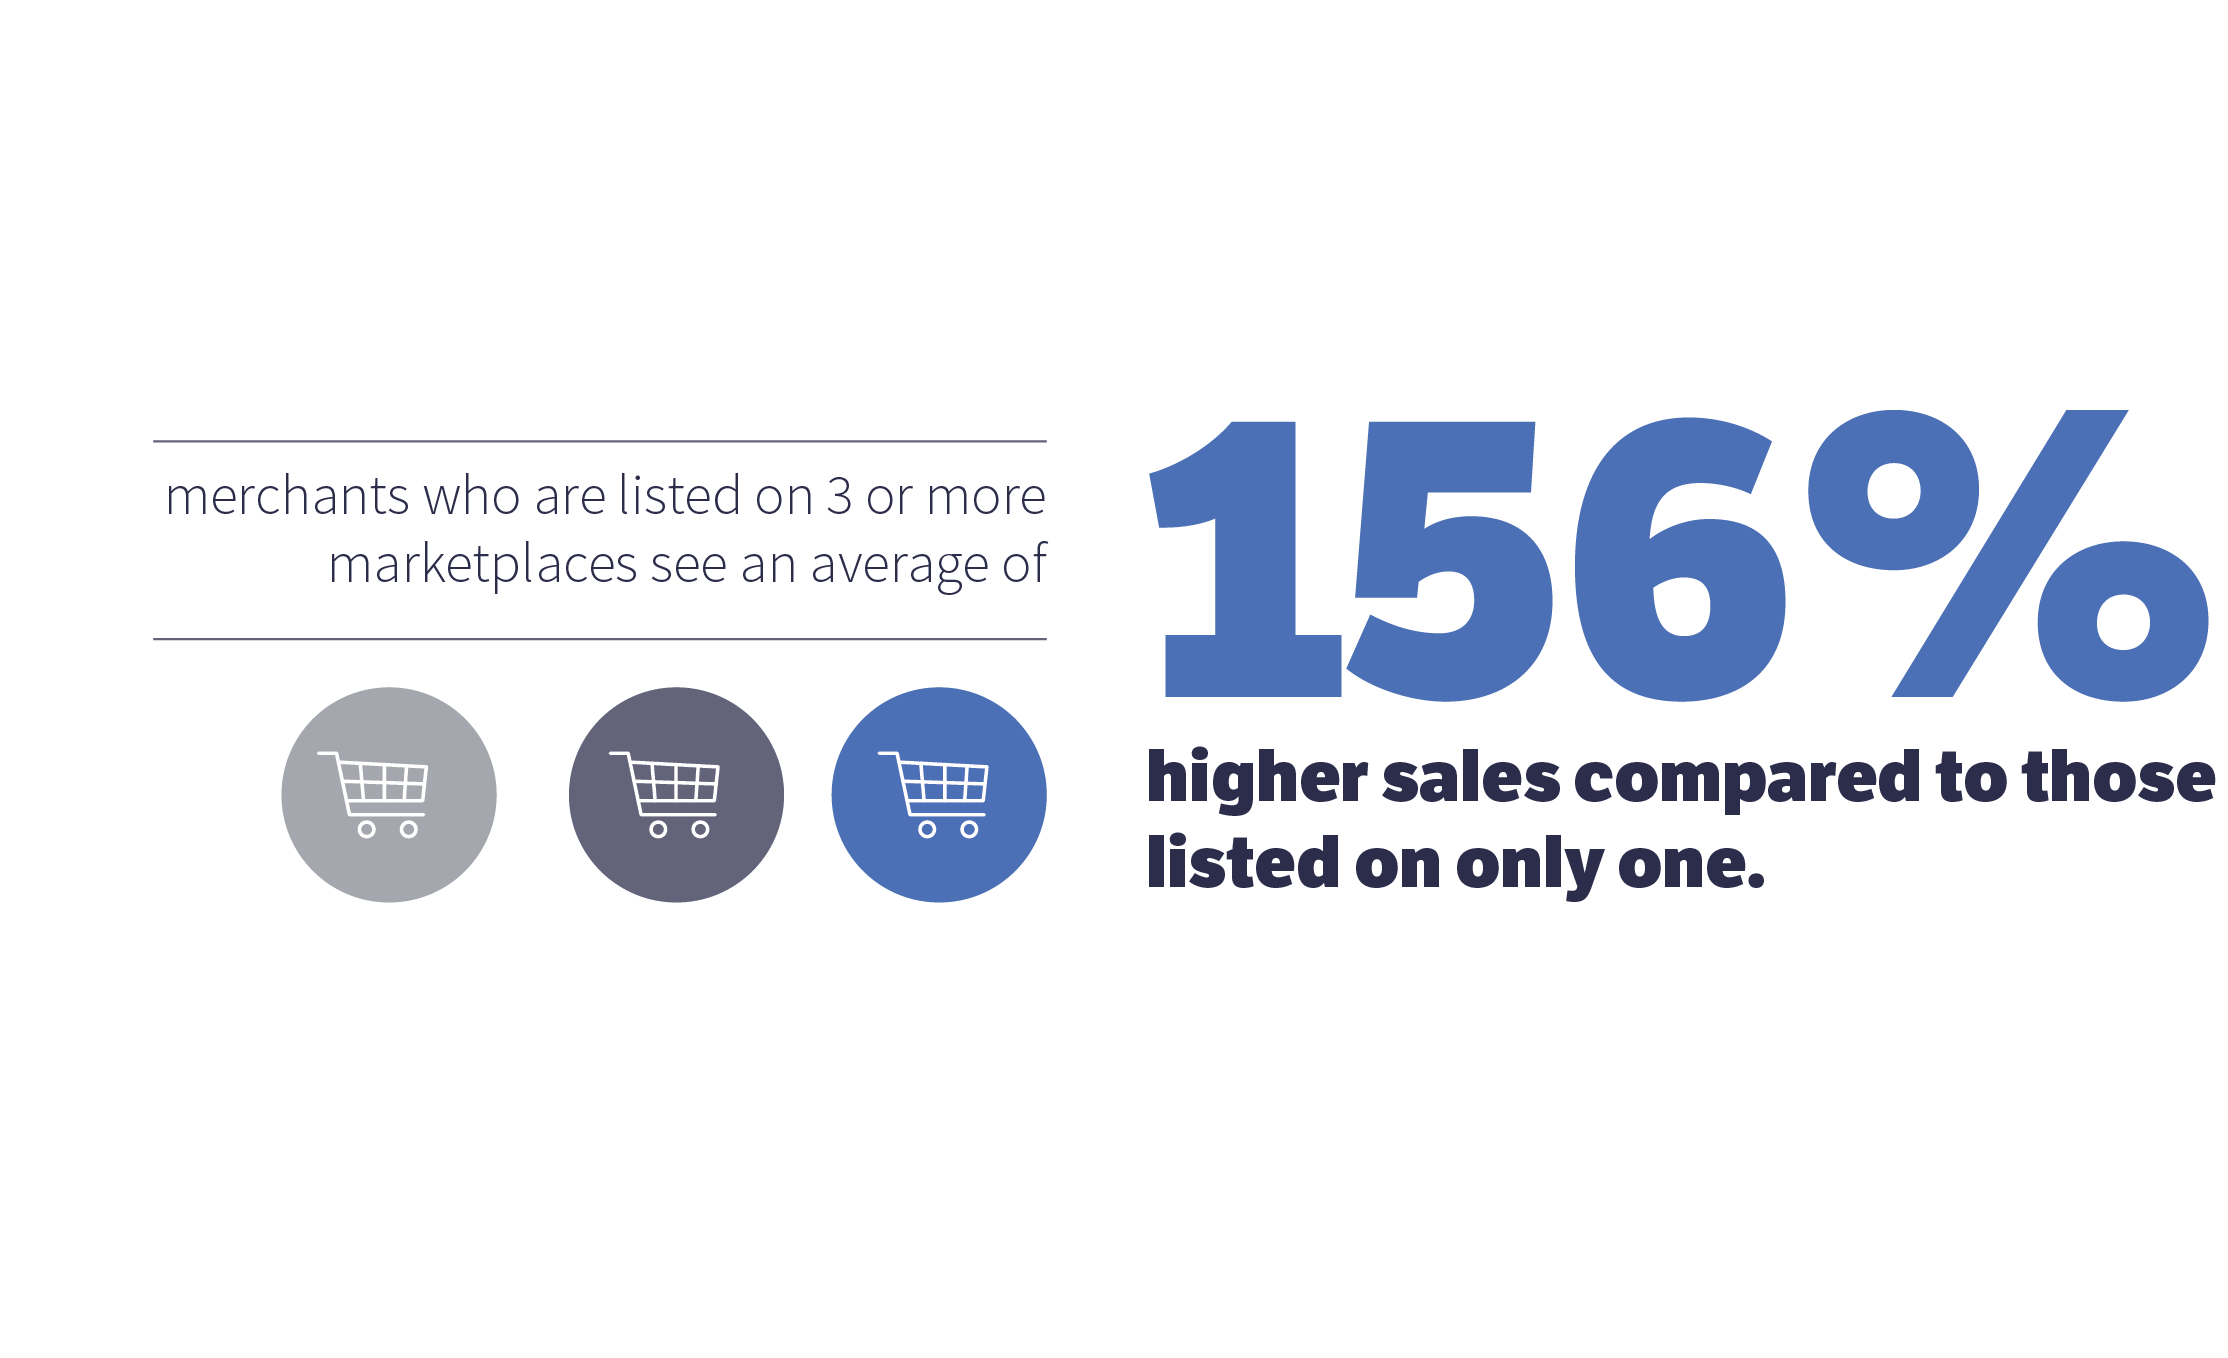 merchants listed on 3 or more marketplaces make 156% more sales than those listed on one